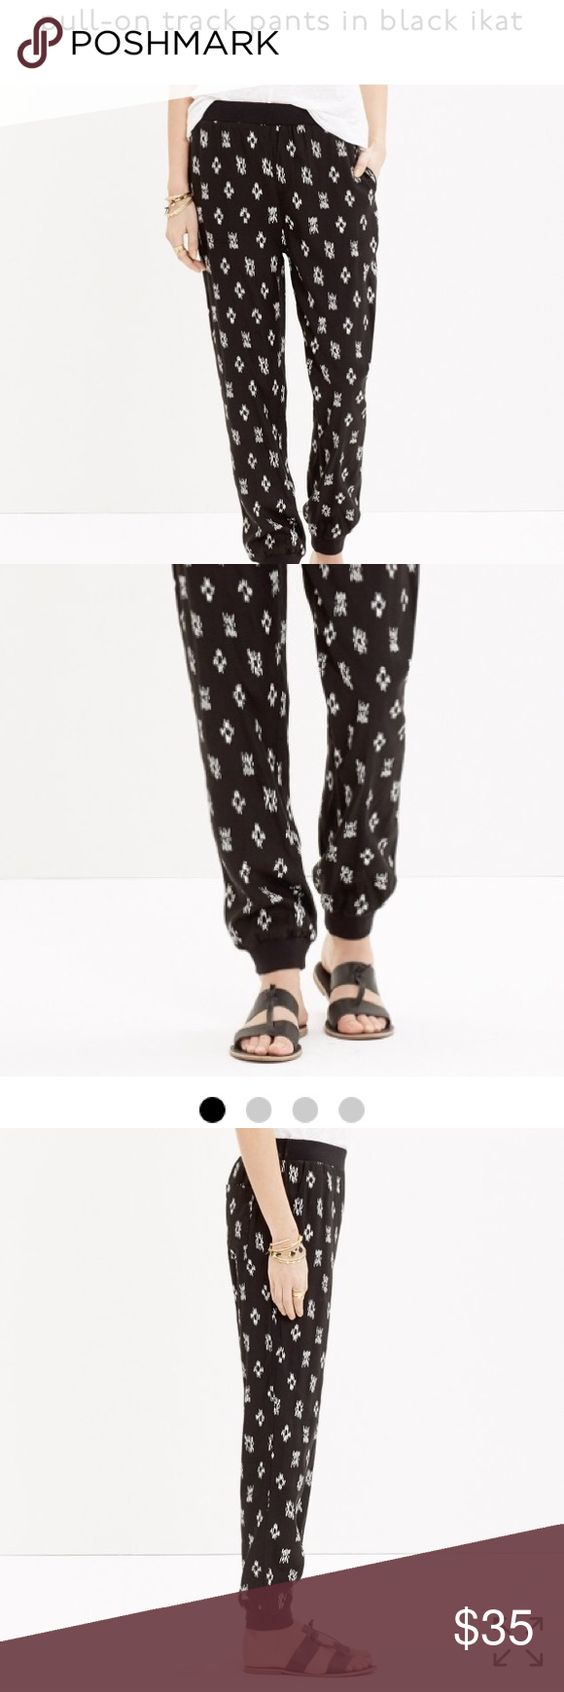 Madewell pants Madewell pull on track pants- size is large- the pants look exactly how they look the in the picture, they are in perfect condition. Madewell Pants